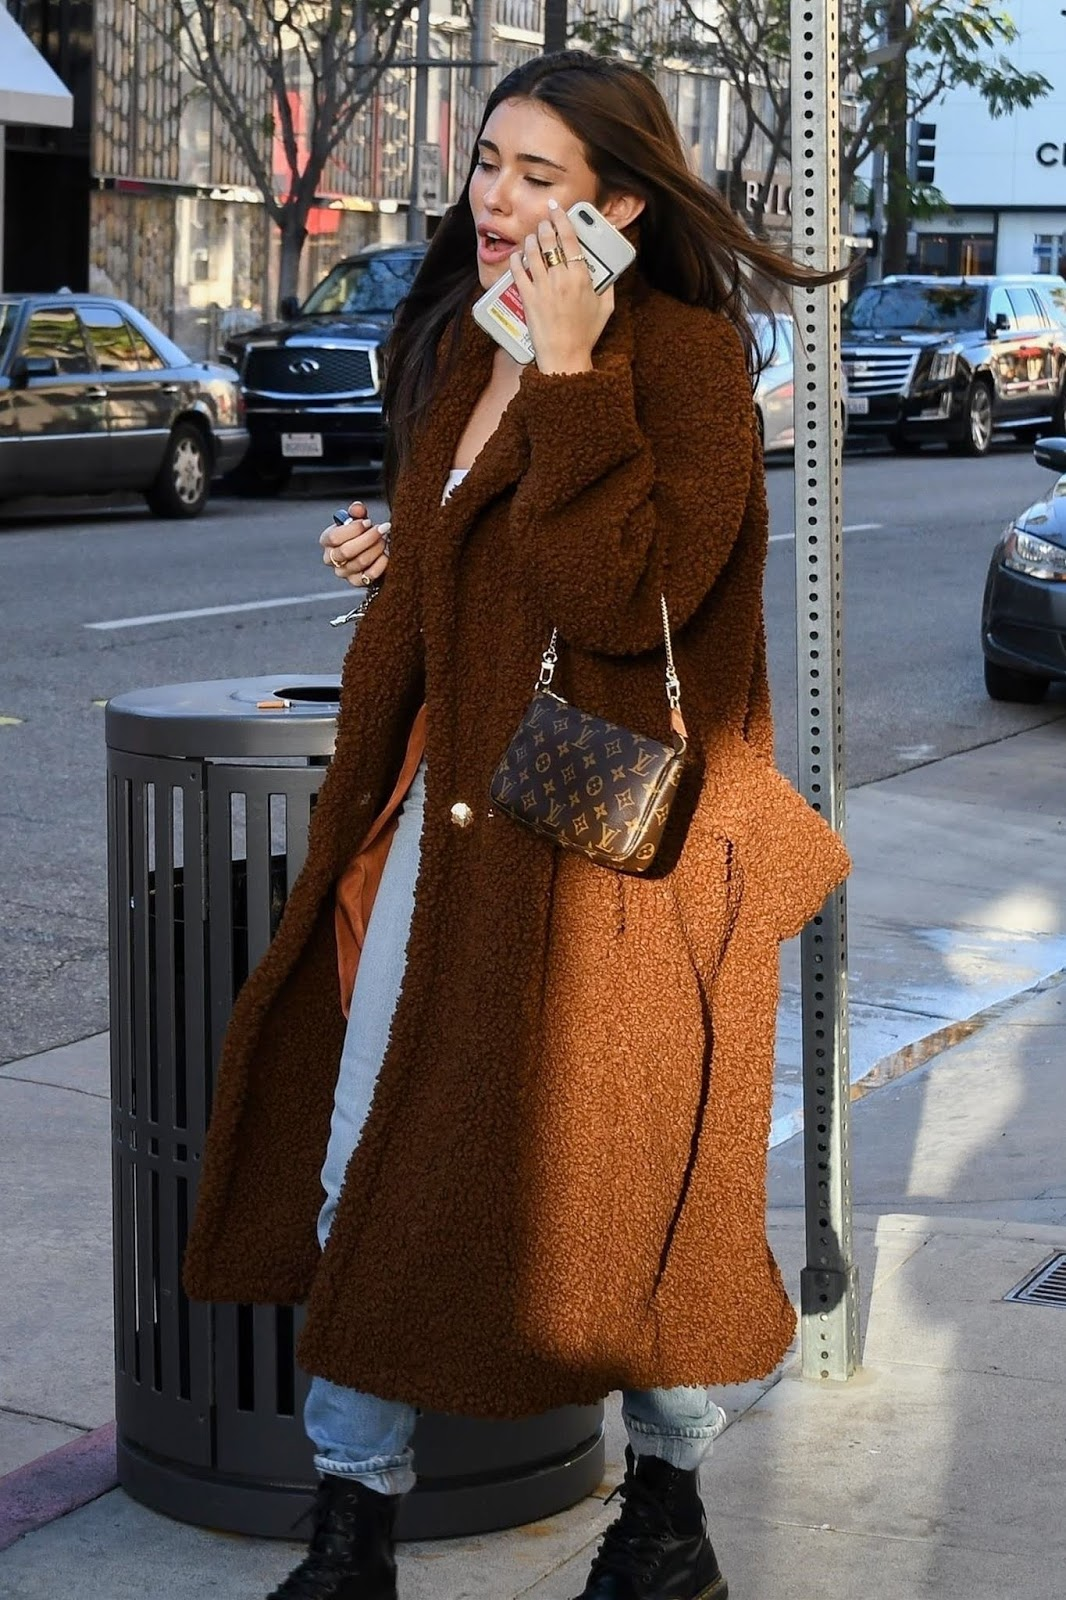 Madison Beer - Shopping on Rodeo Drive in Beverly Hills, CA - 02/11/2019